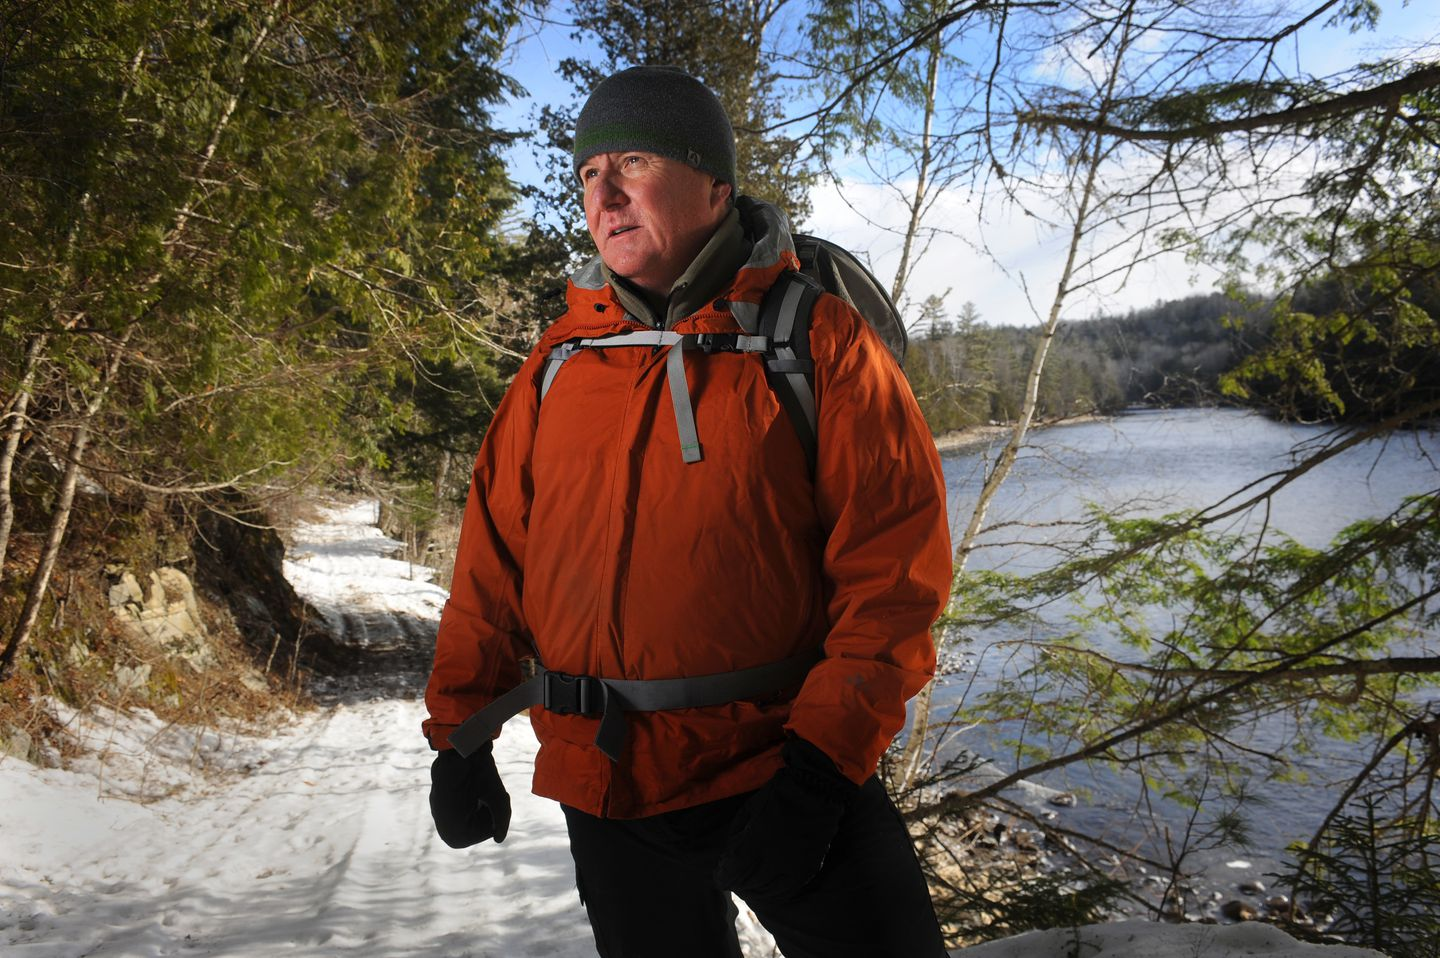 Walters showed visitors the area where a plan brings new high-voltage transmission lines across the pristine Kennebec Gorge.